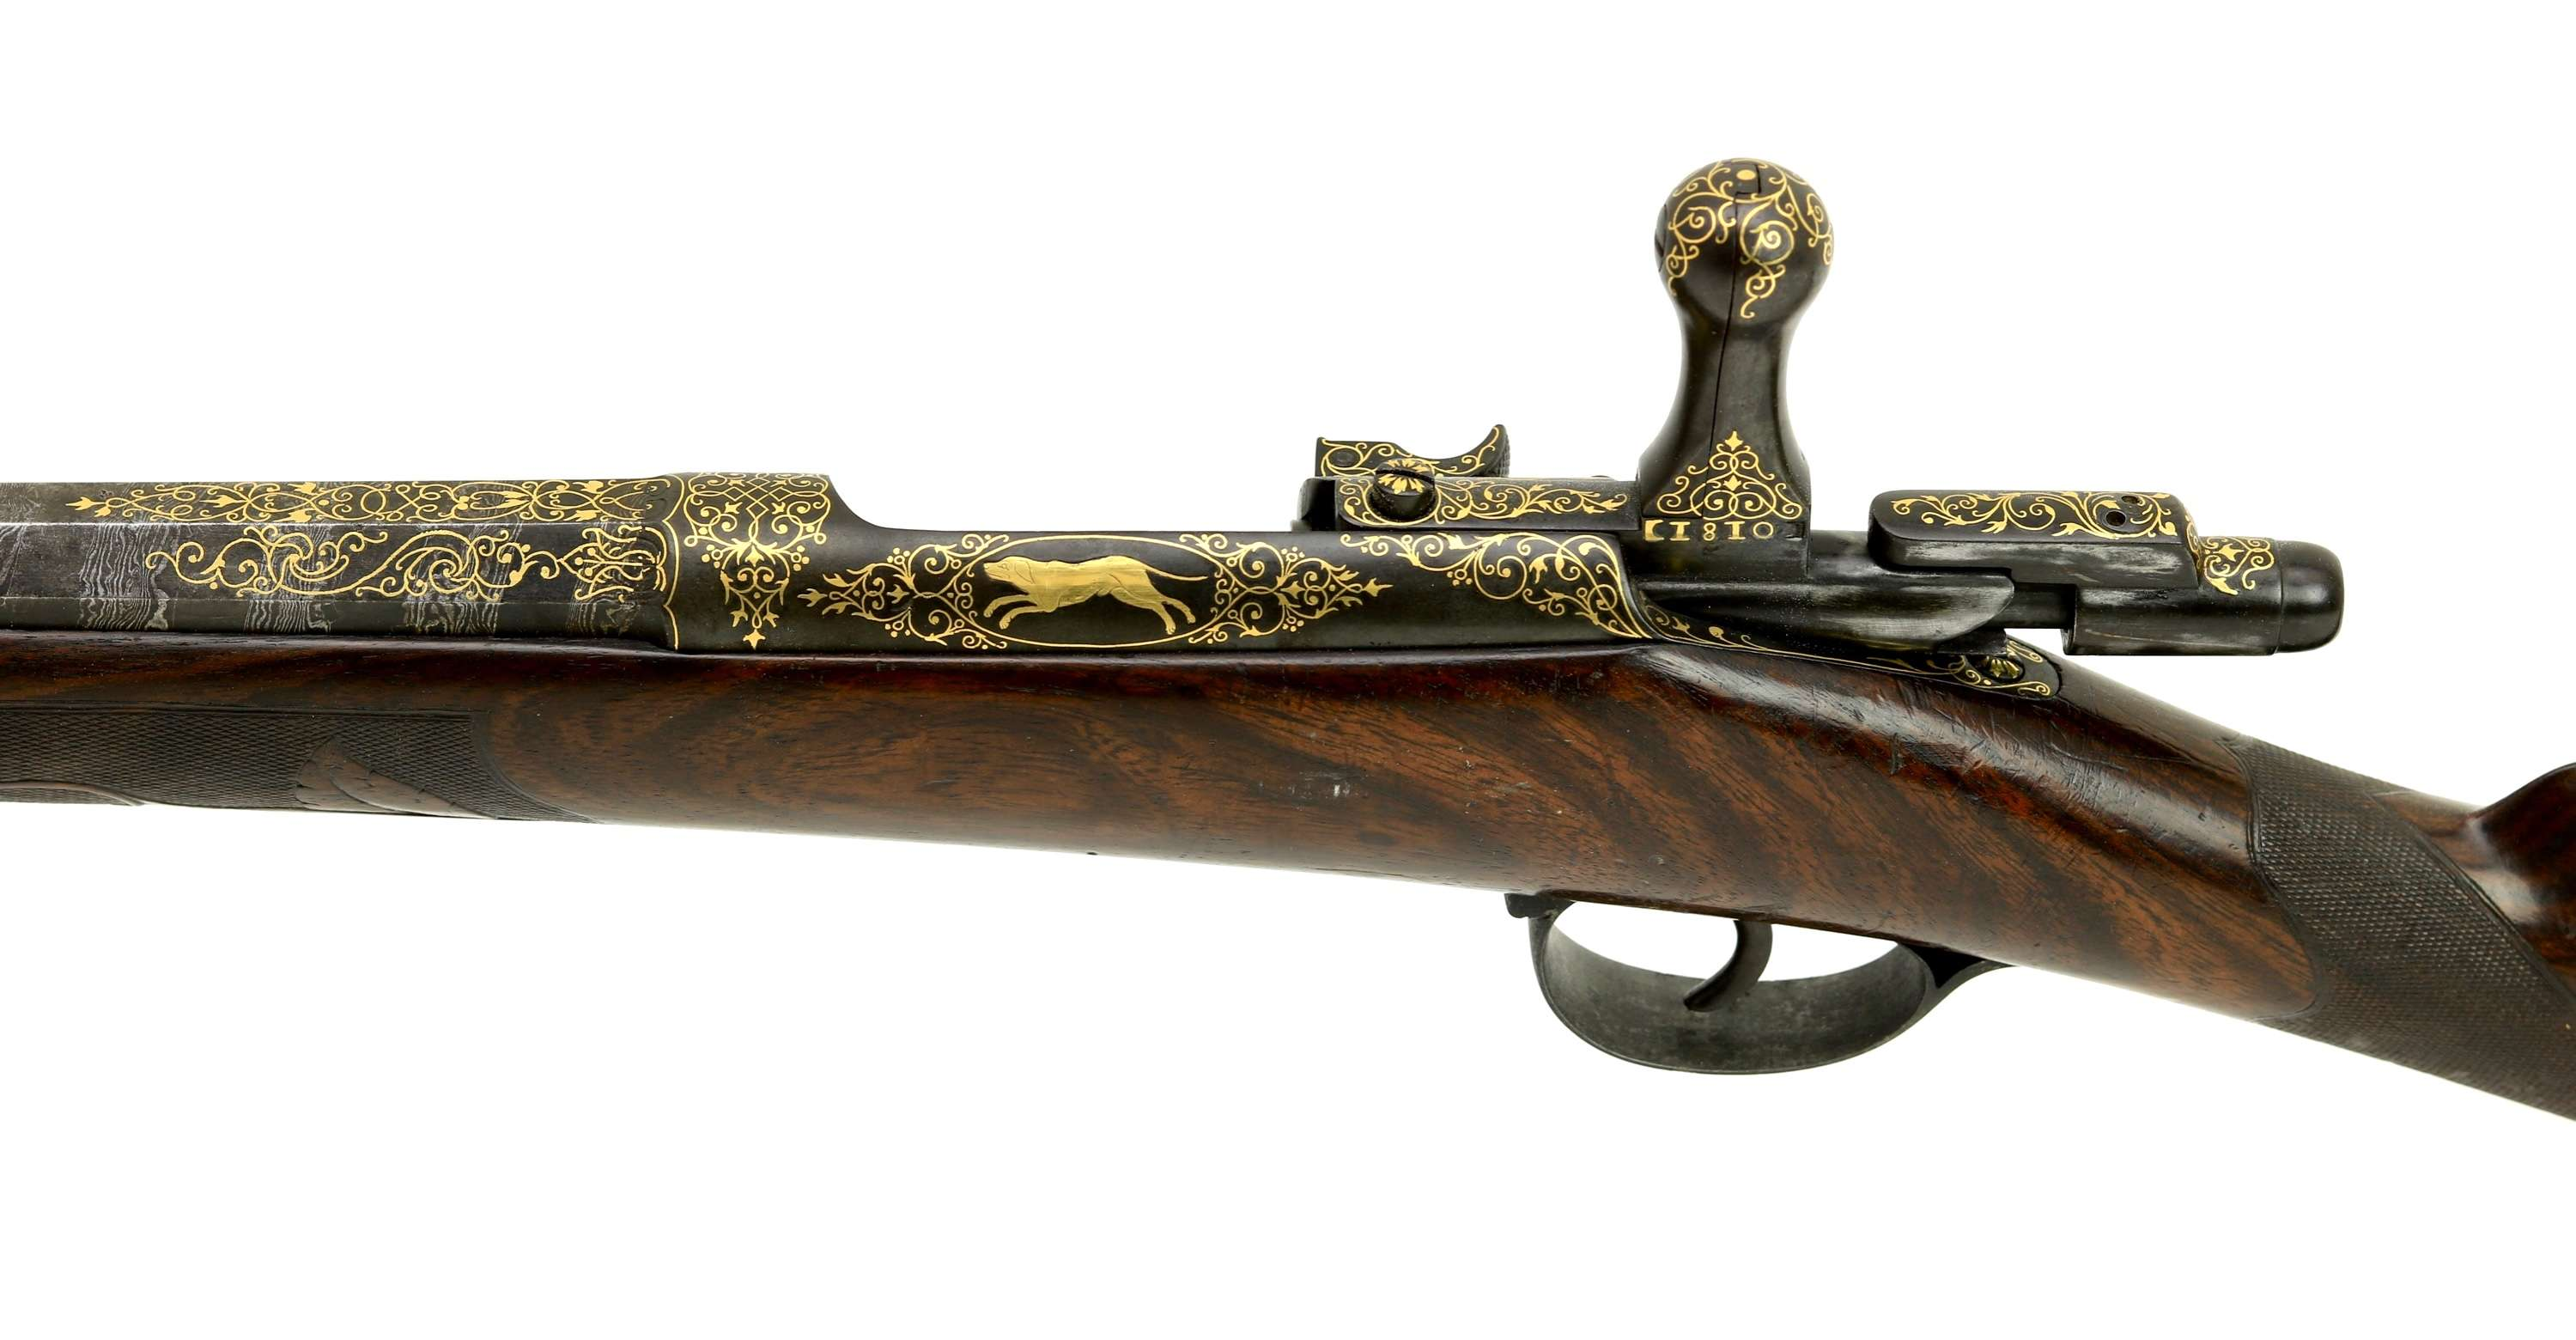 Dutch colonial sporting gun, made in Indonesia and based on Beaumont technology